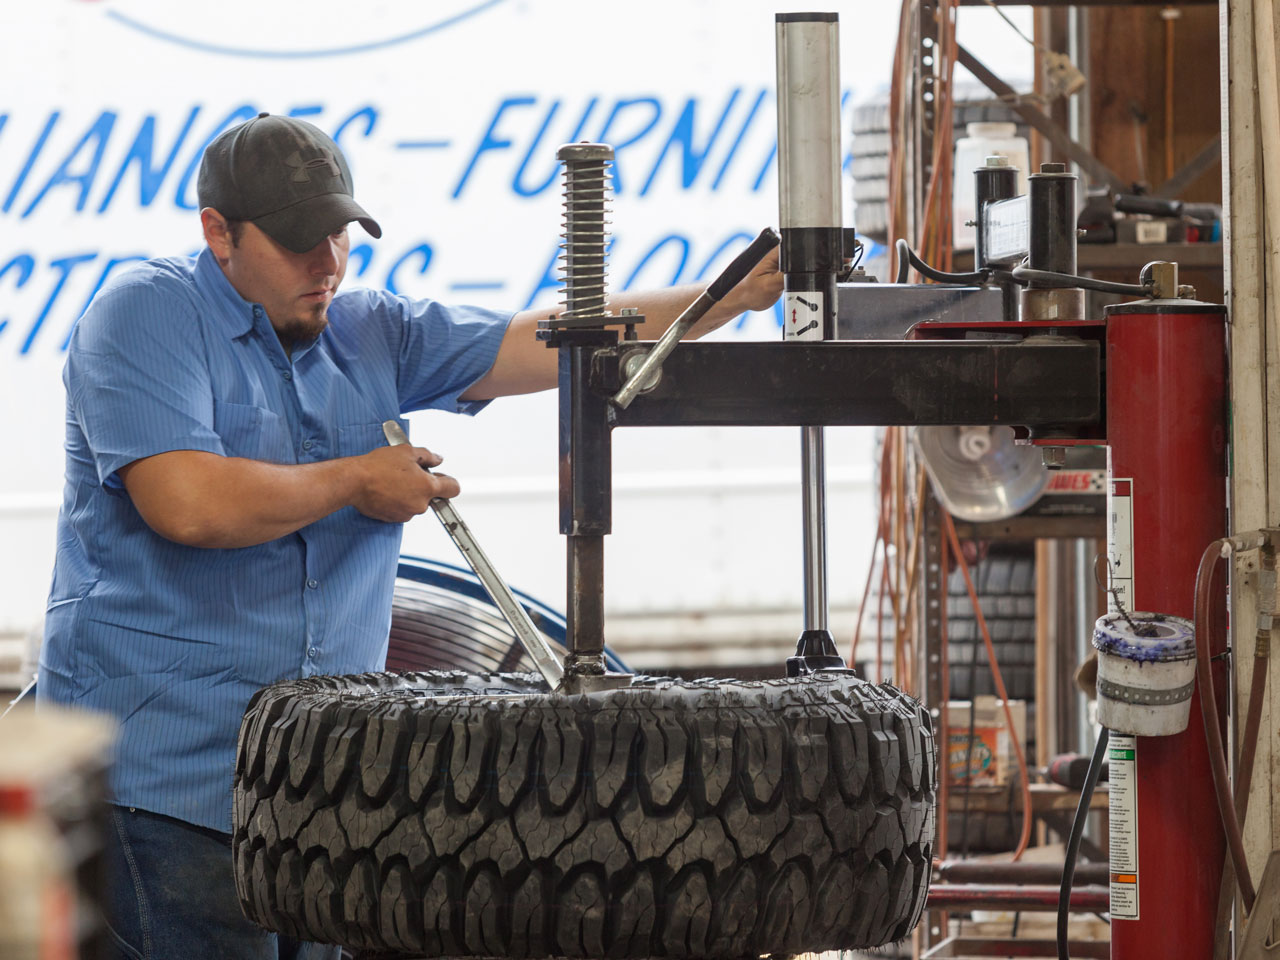 Technician performing a tire rotation on a tire